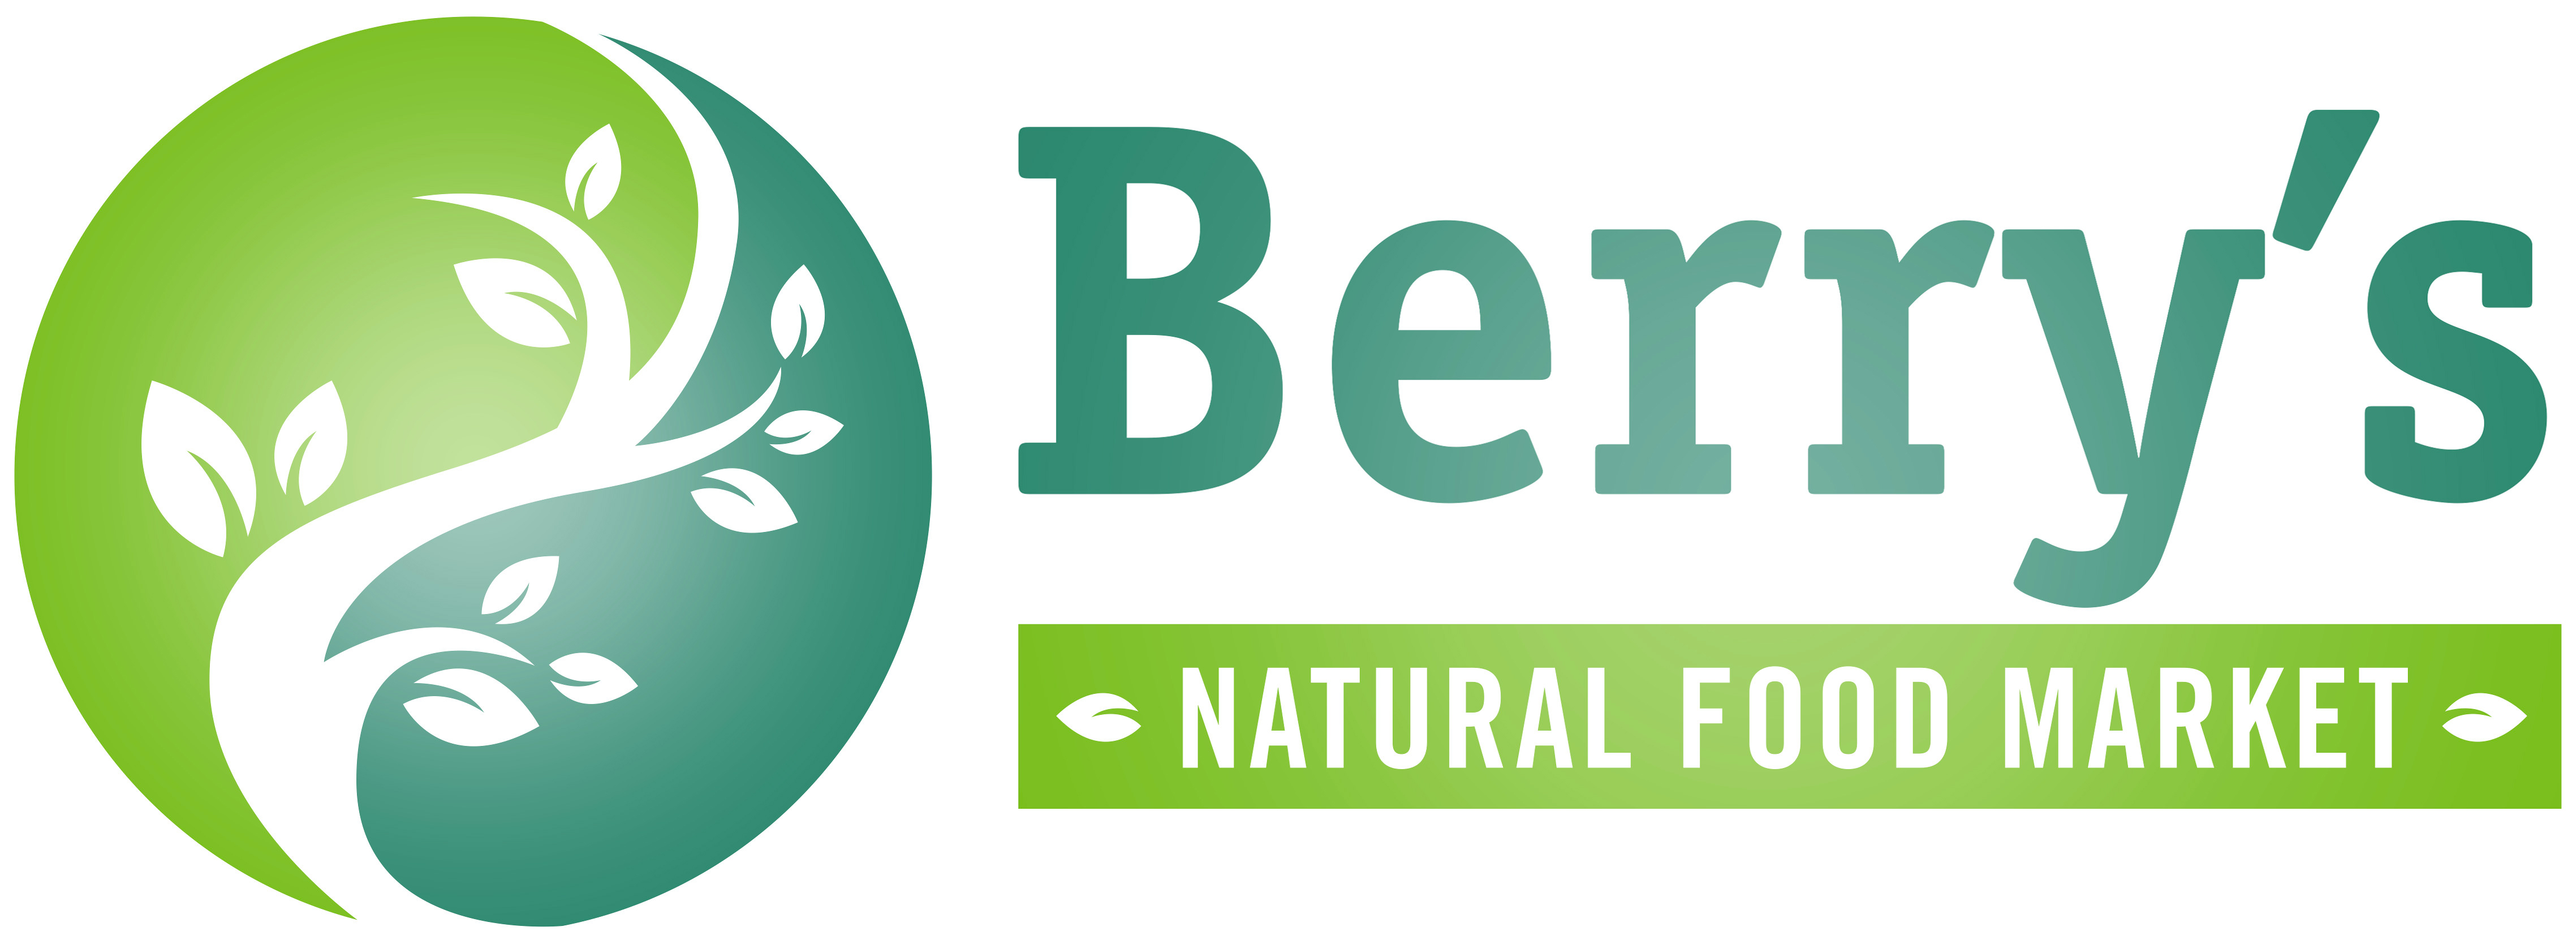 Berry's Natural Food Market logo